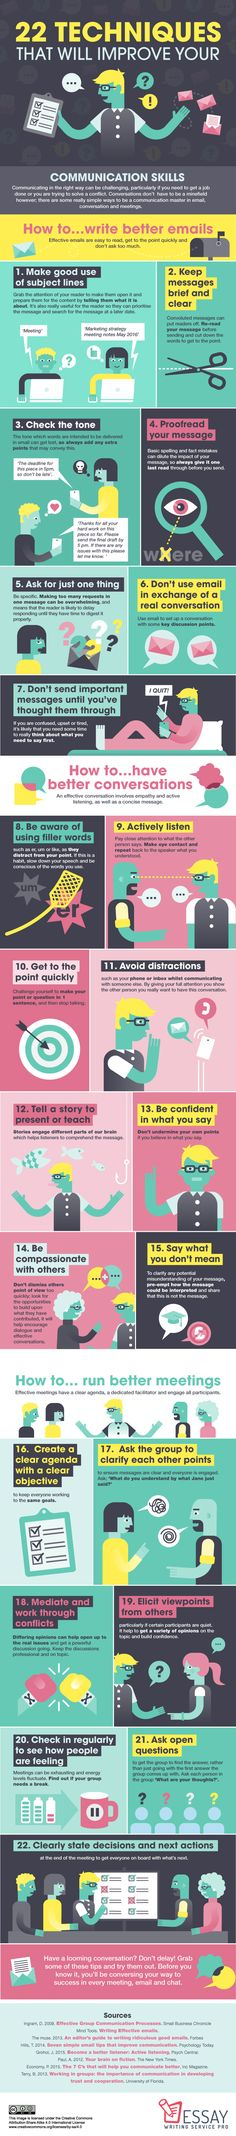 22 Ways to Improve Your Communication Skills Infographic - http://elearninginfographics.com/22-ways-to-improve-your-communication-skills-infographic/